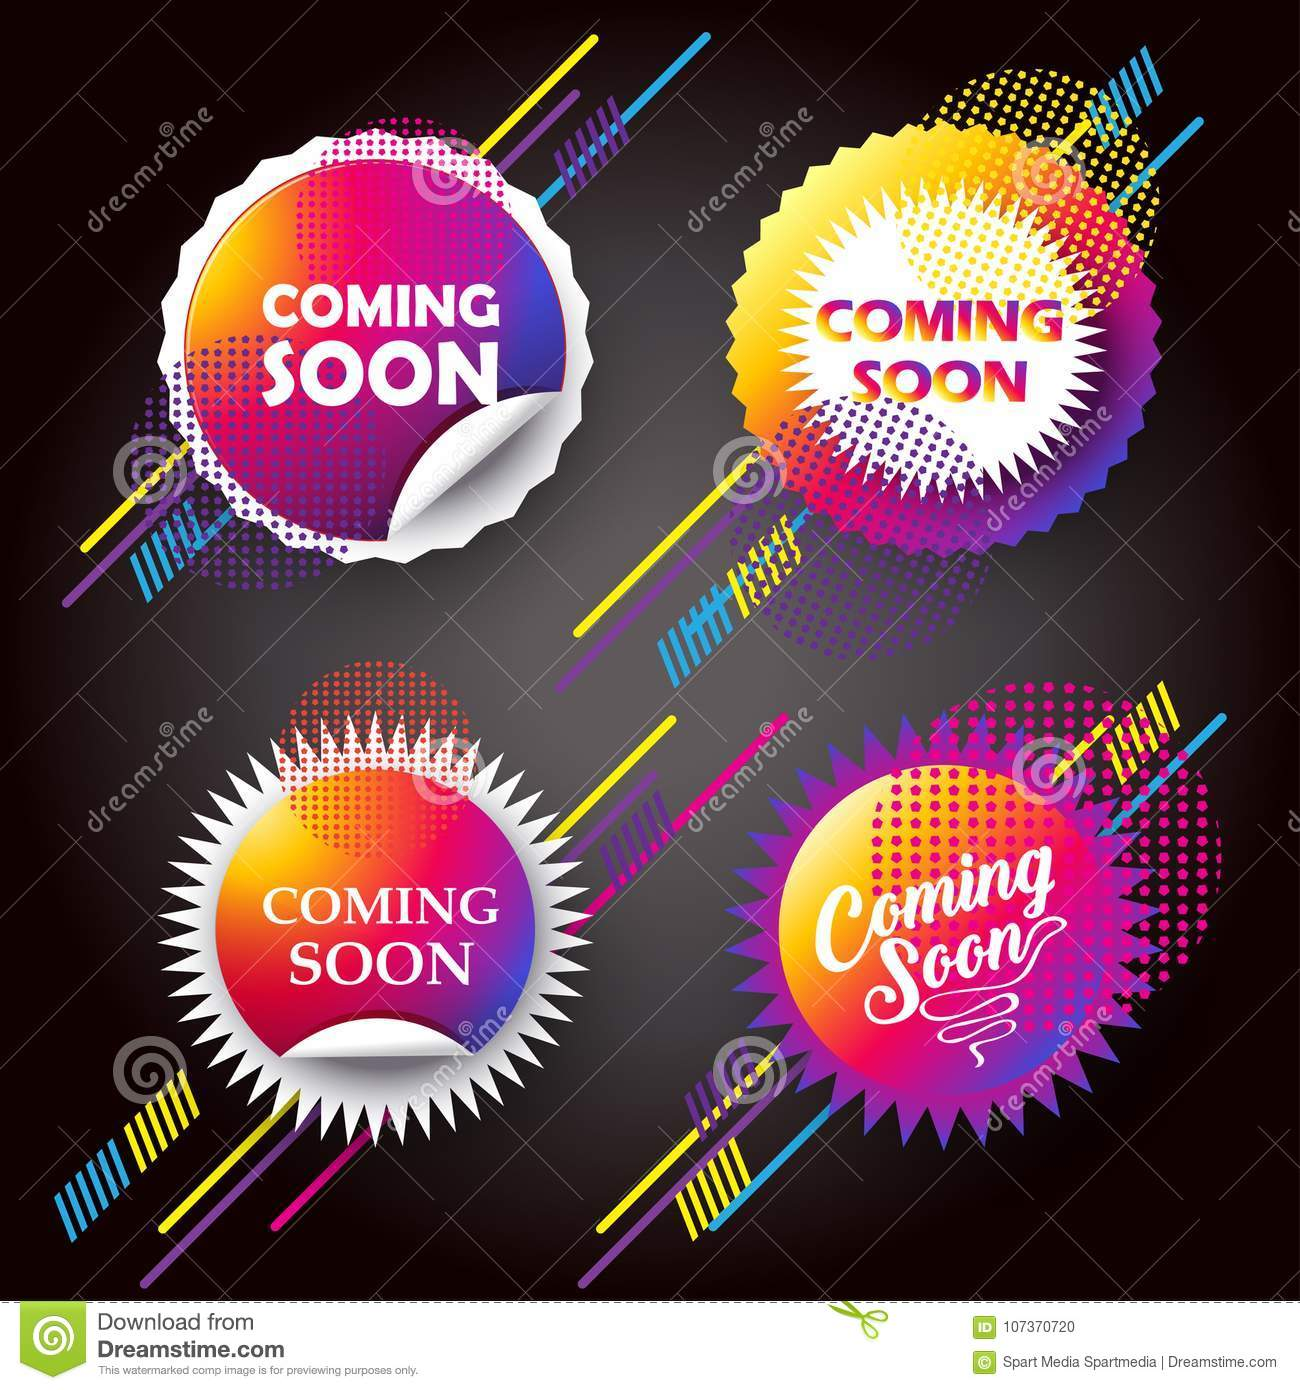 Coming Soon Buttons Dynamic Concept Stock Vector Illustration Of Marketing Glowing 107370720